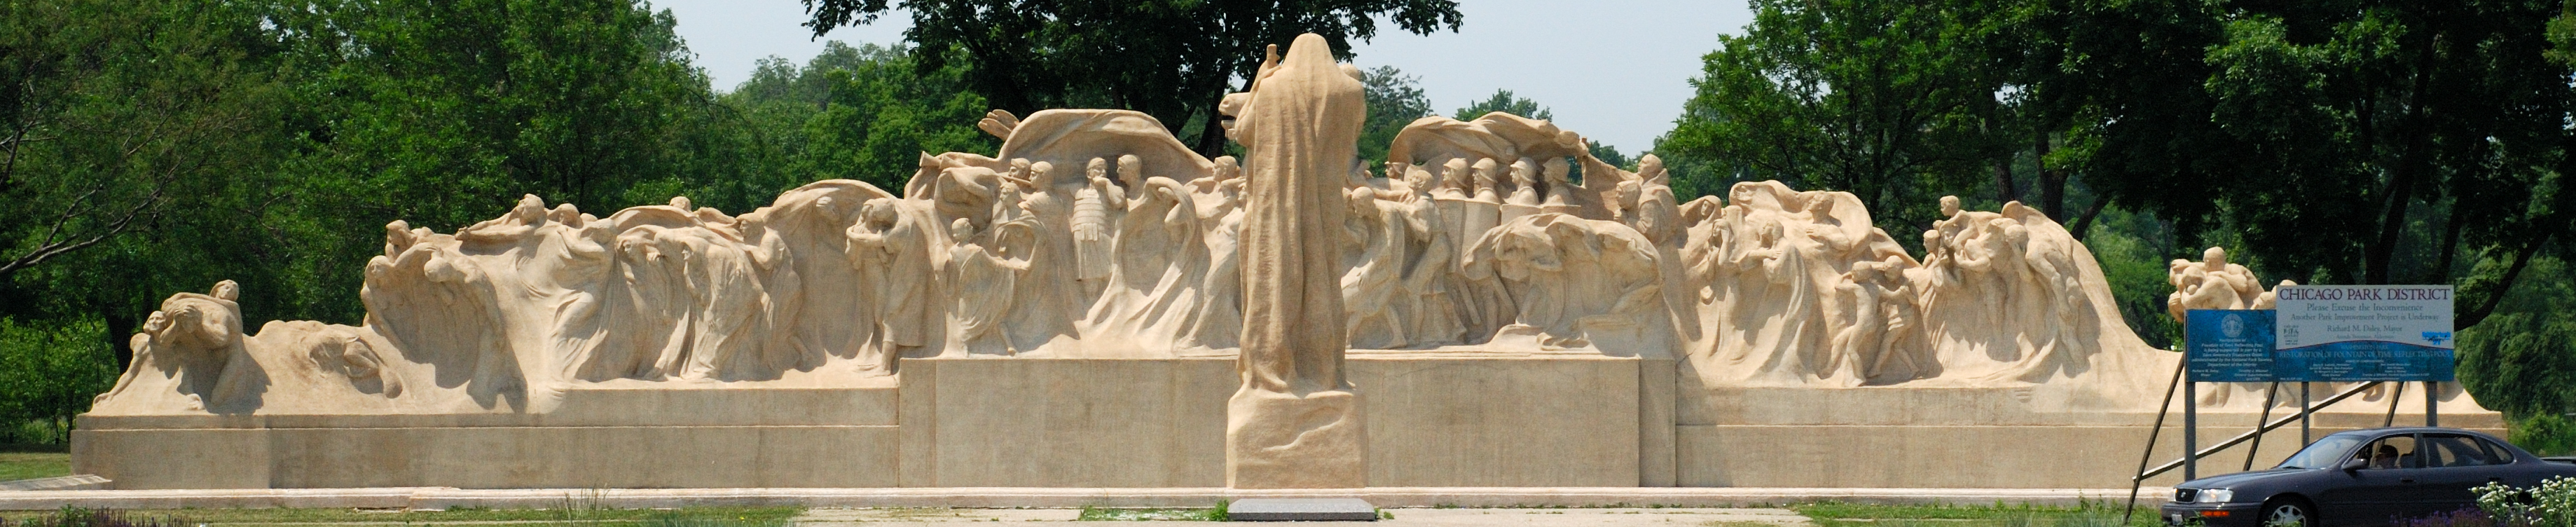 Fountain of Time (1910-22), Midway Plaisance, Chicago, Illinois.